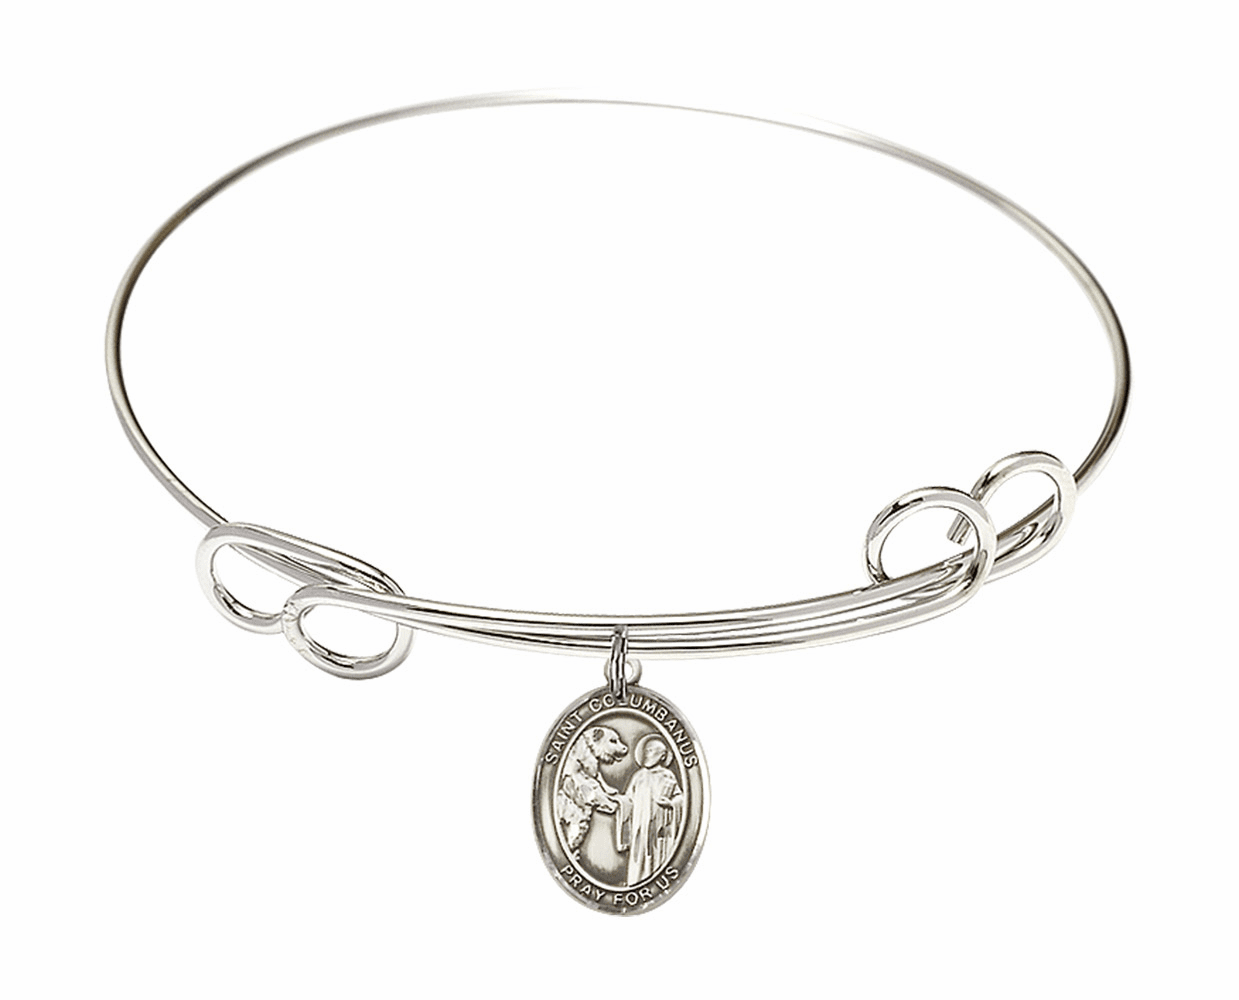 Round Loop St Columbanus Bangle Charm Bracelet by Bliss